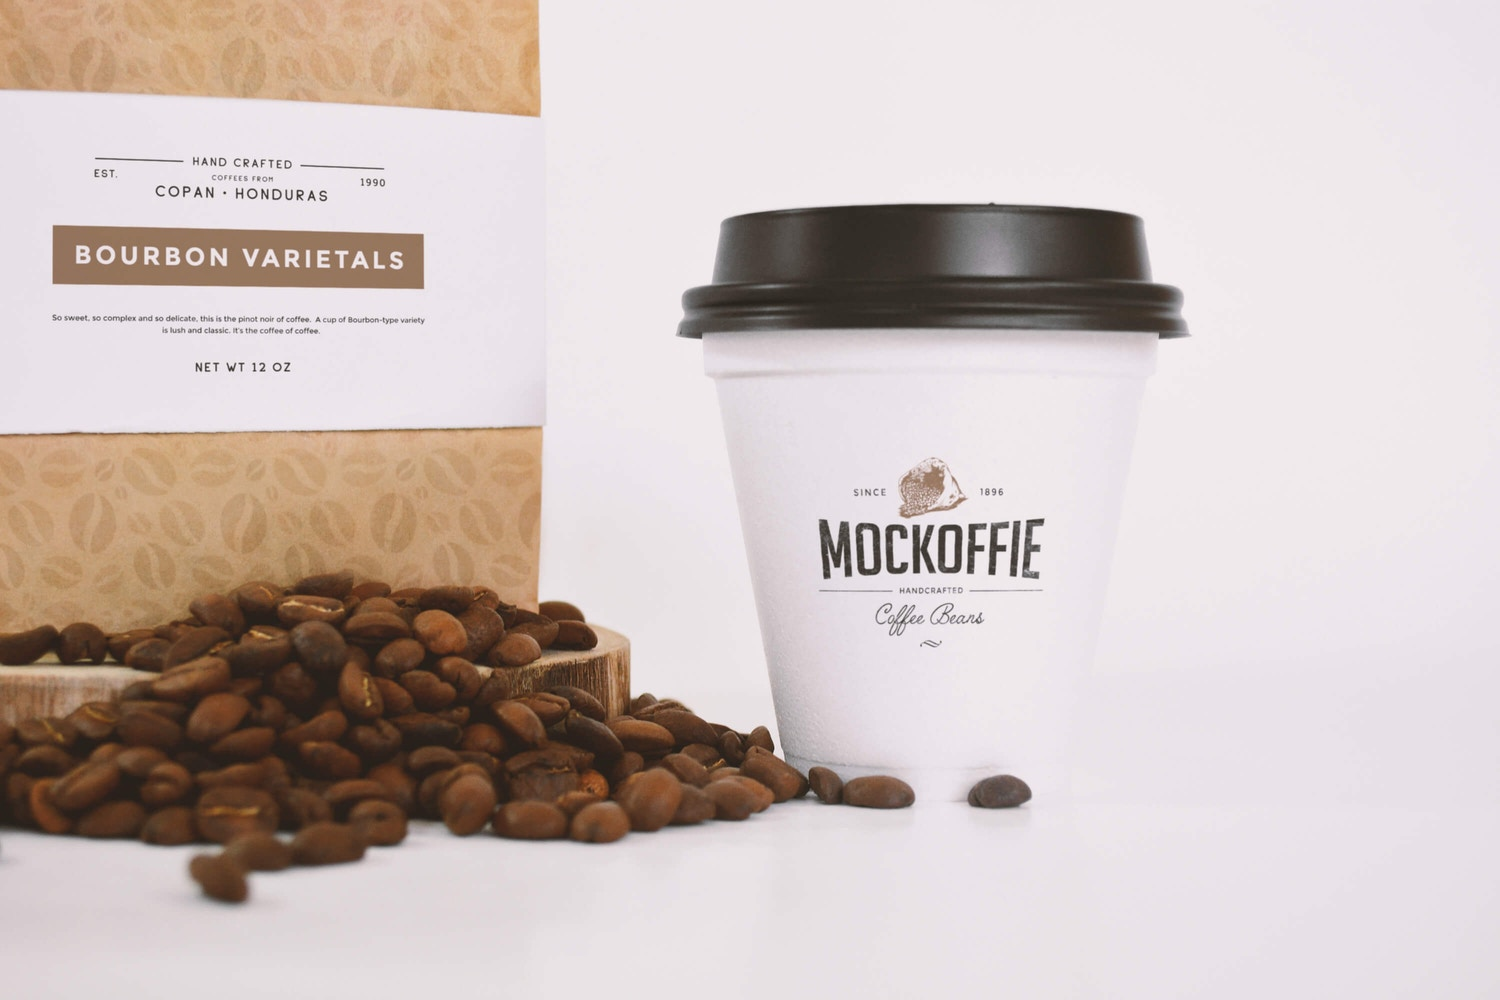 Coffee Bag and Sealed Cup Mockup Close up View by Eduardo Mejia on Original Mockups